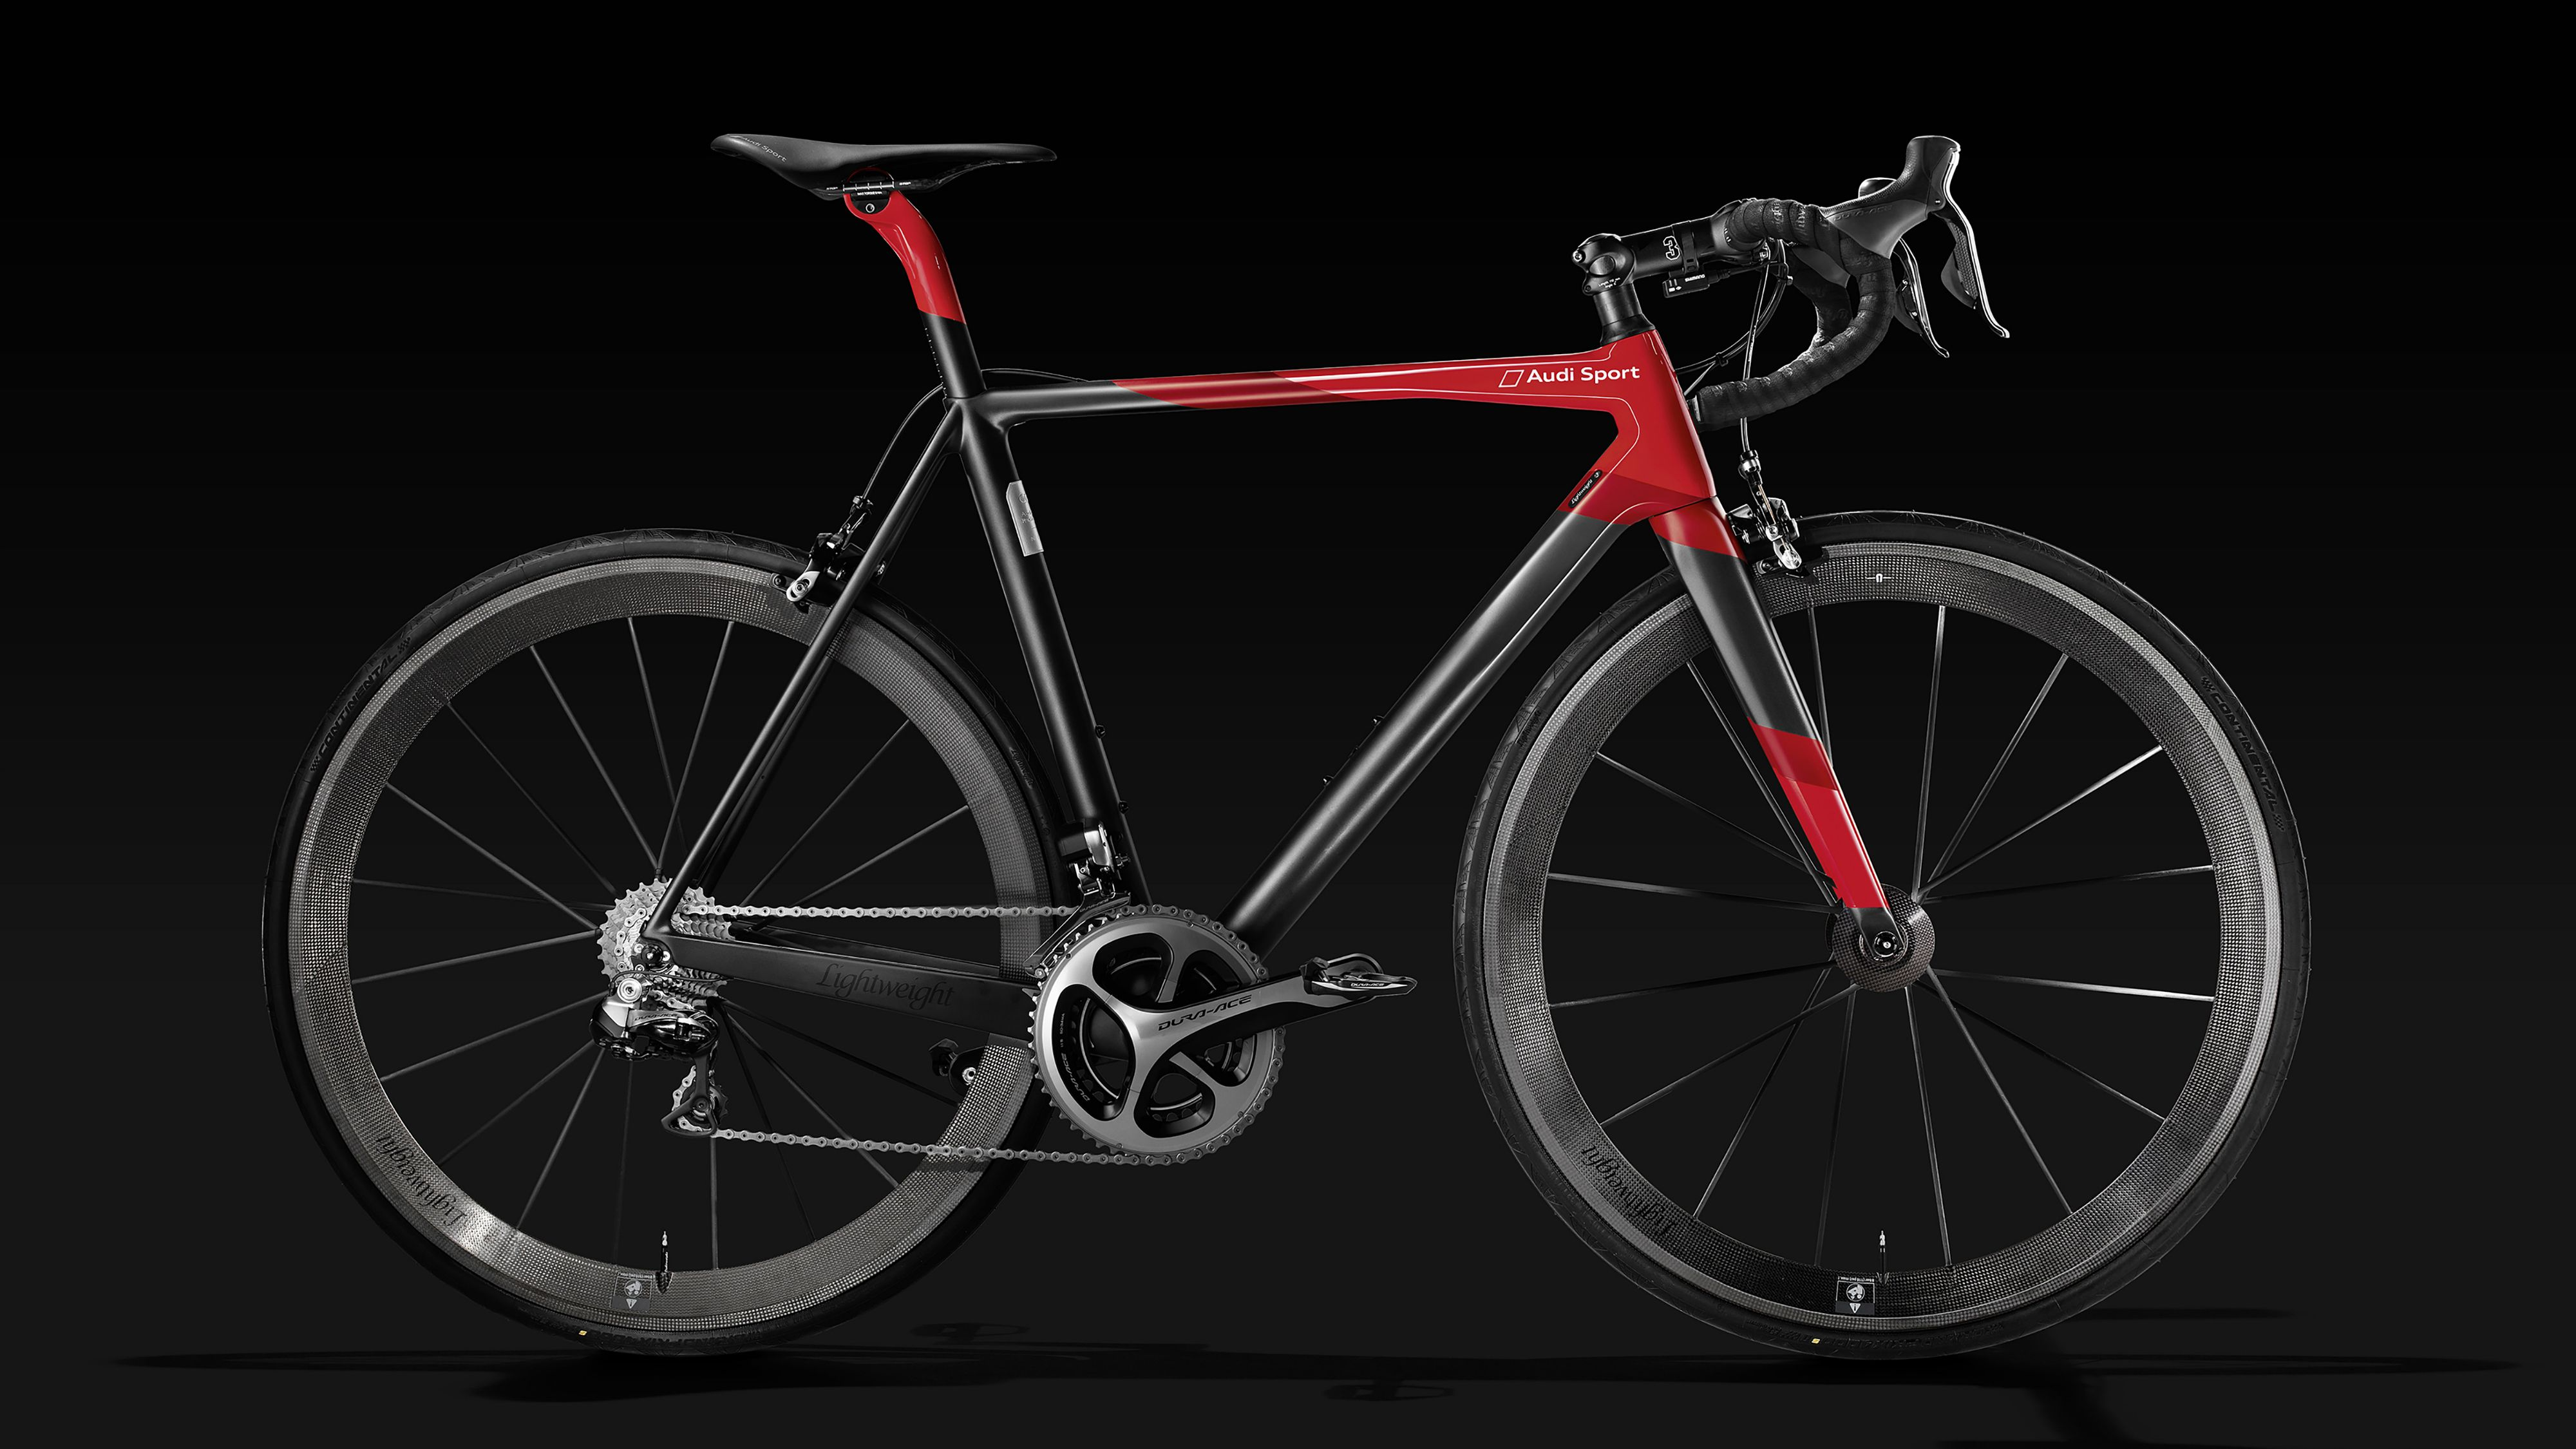 This 20,000 Carbon Fiber Bike Weighs a Ridiculous 12